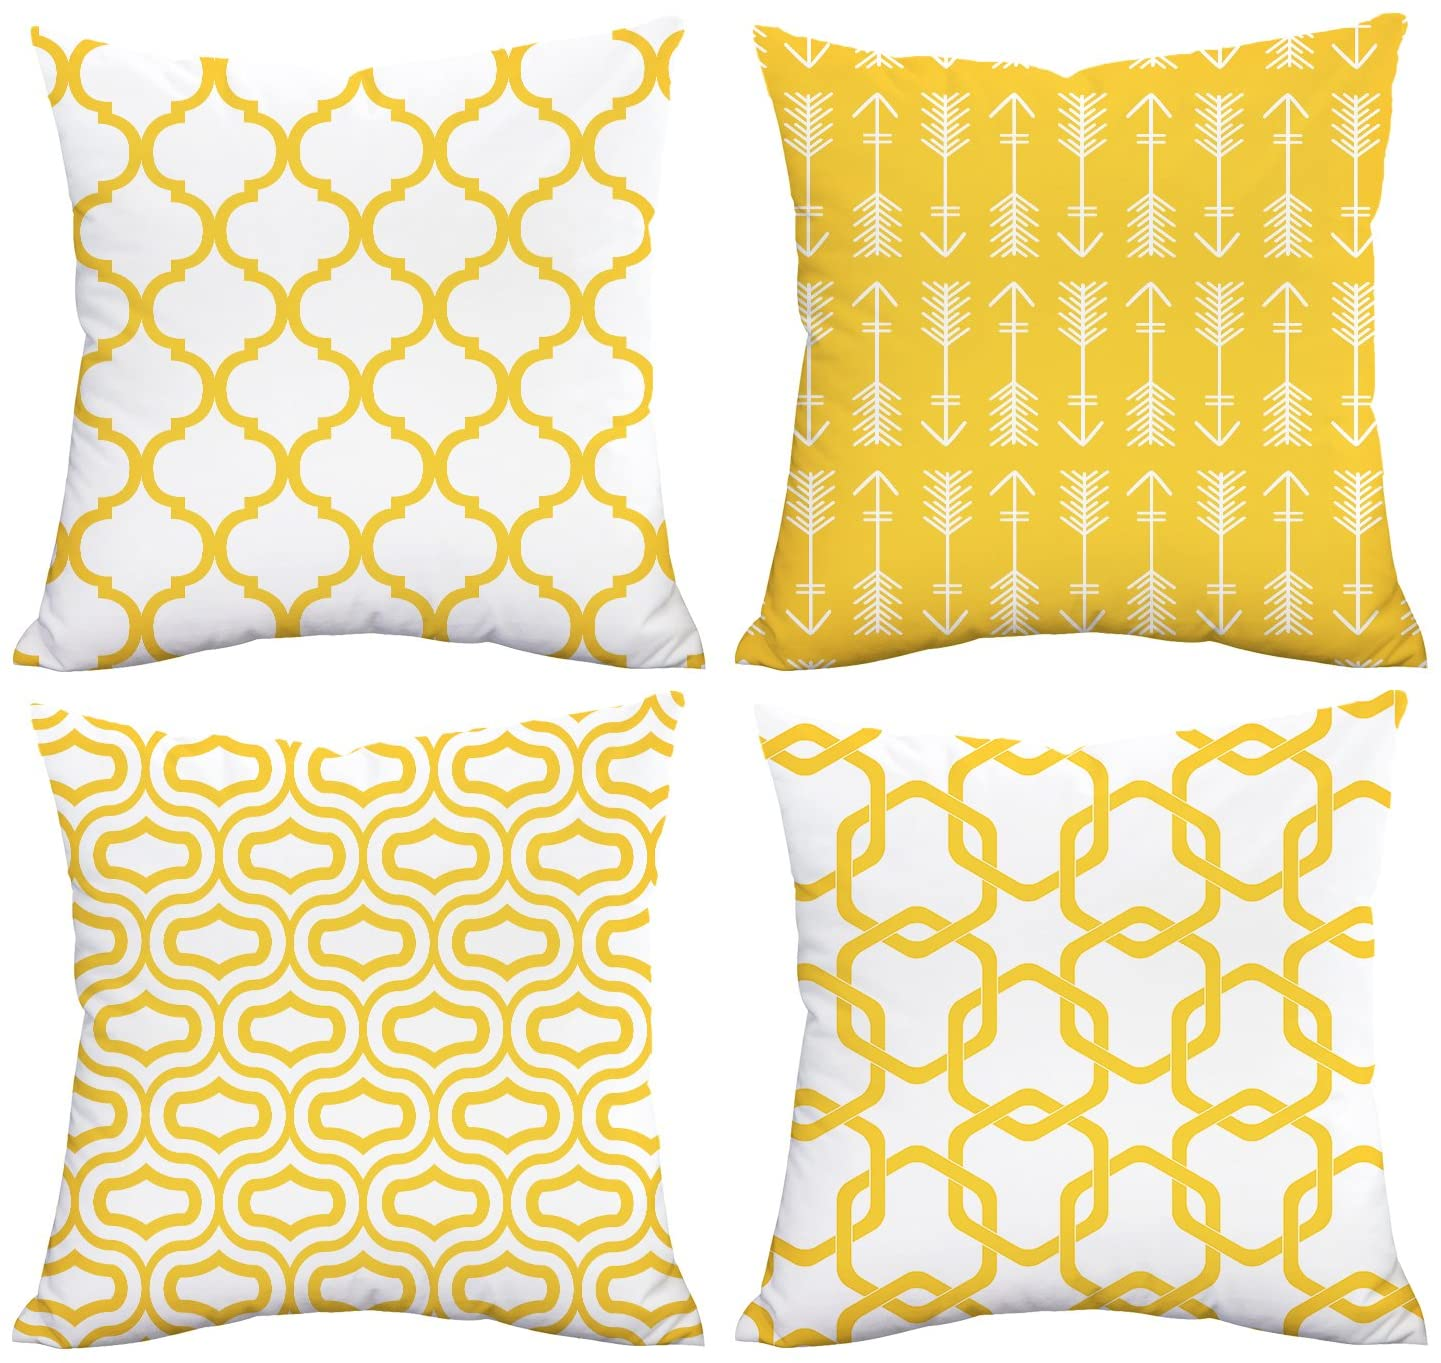 Amazon Com Lemon Yellow Throw Pillow Case Arrow Quatrefoil Accent Trellis Chain Pillow Cover Modern Cushion Cover Square Pillowcase Decoration For Sofa Bed Chair Car Set Of 4 18 X 18 Inch Kitchen